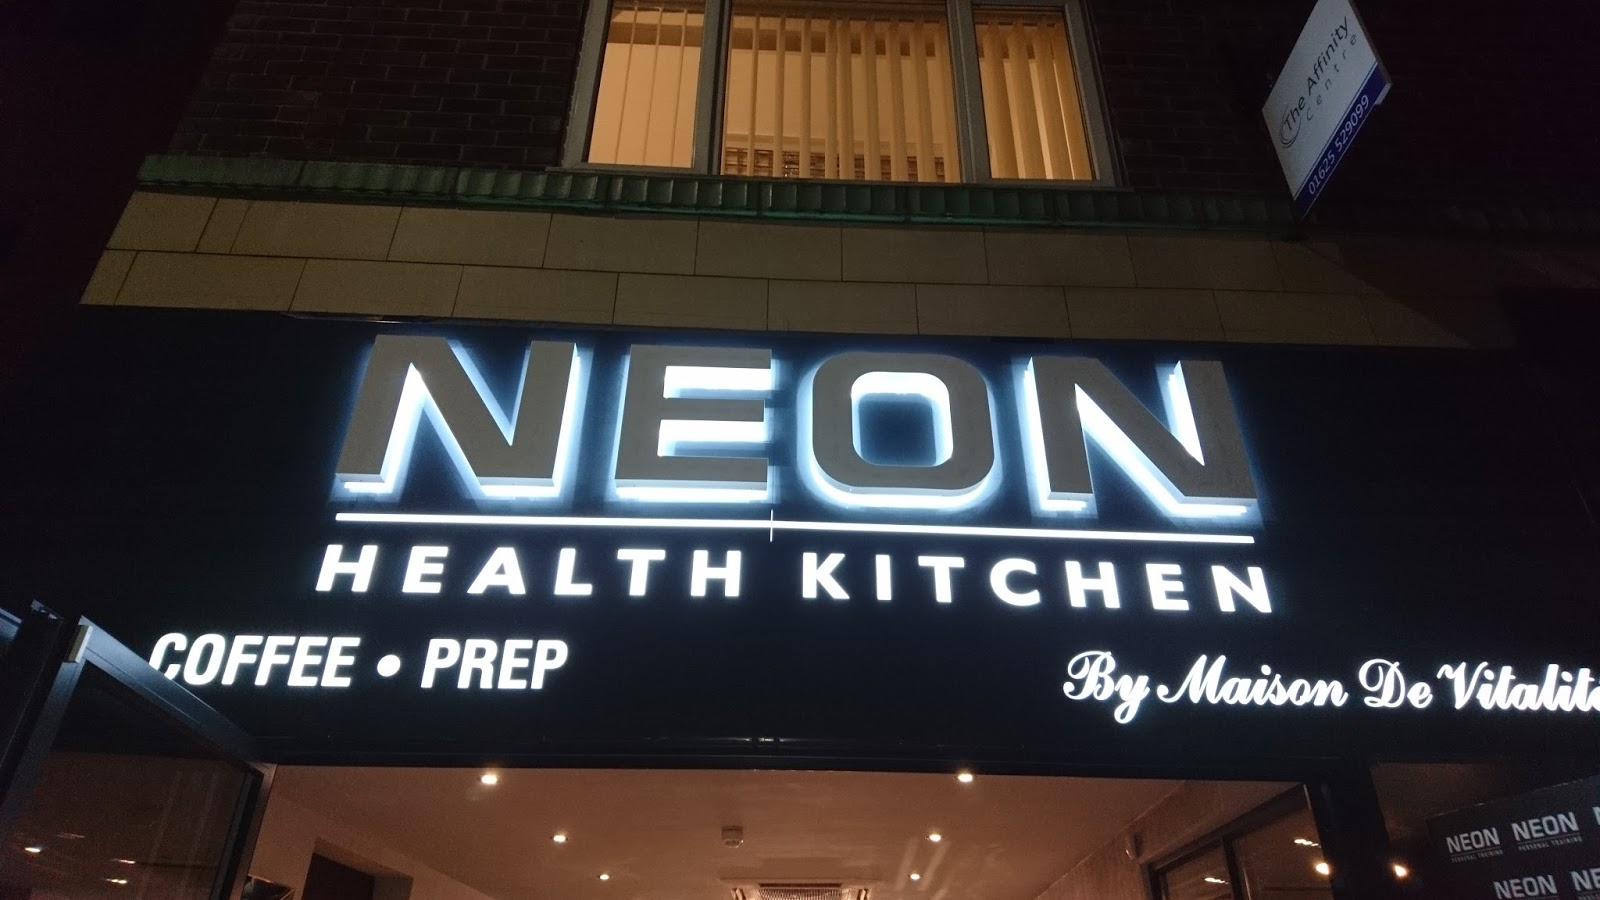 Power is a State of Mind: Neon PT Launch Health Kitchen in Wilmslow